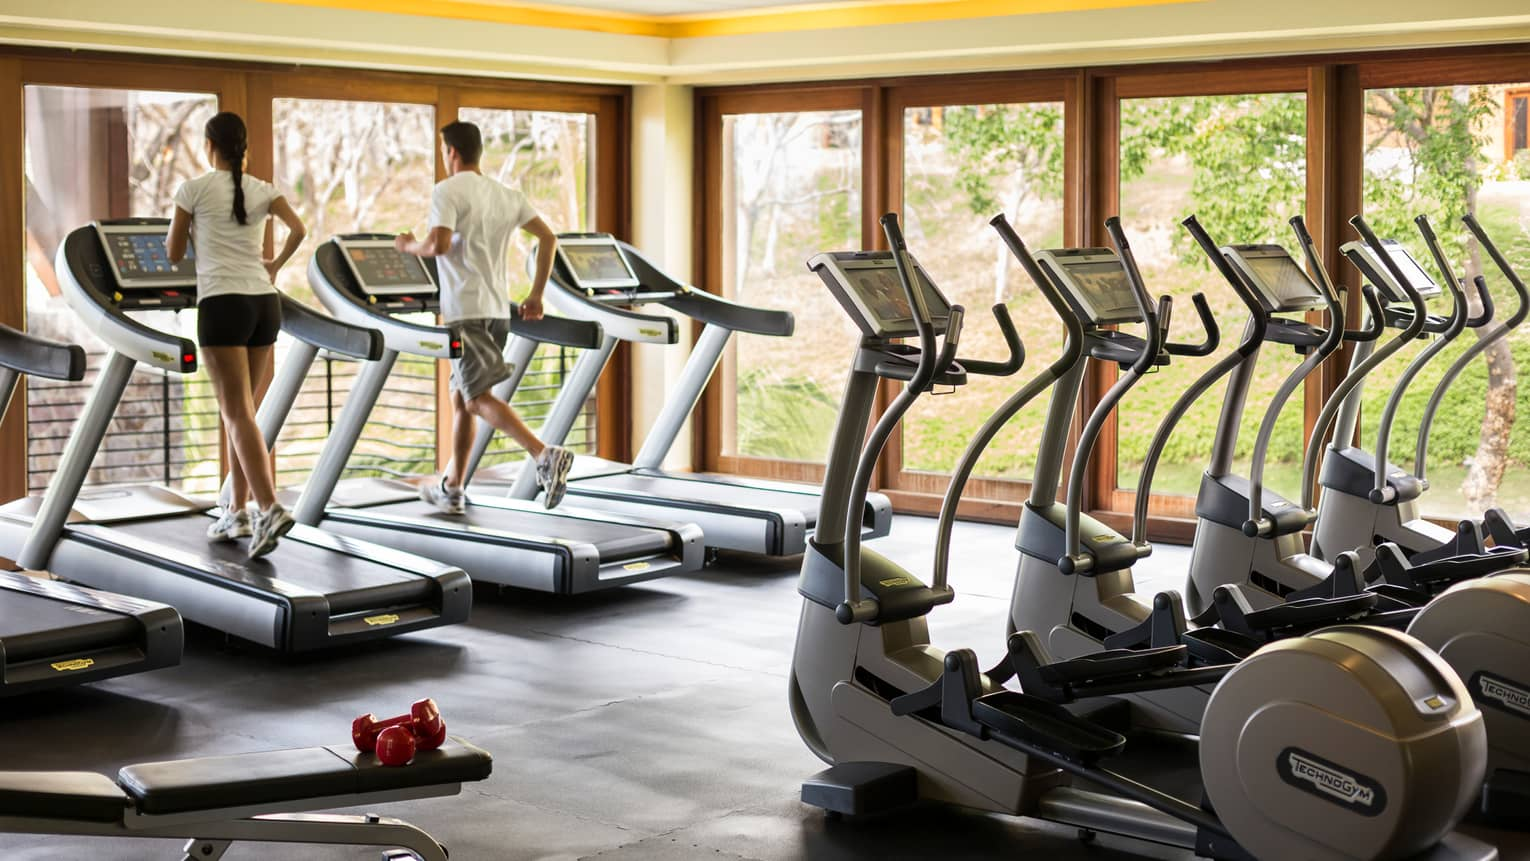 Man and woman run on treadmills near Fitness Centre window, row of cardio machines behind them